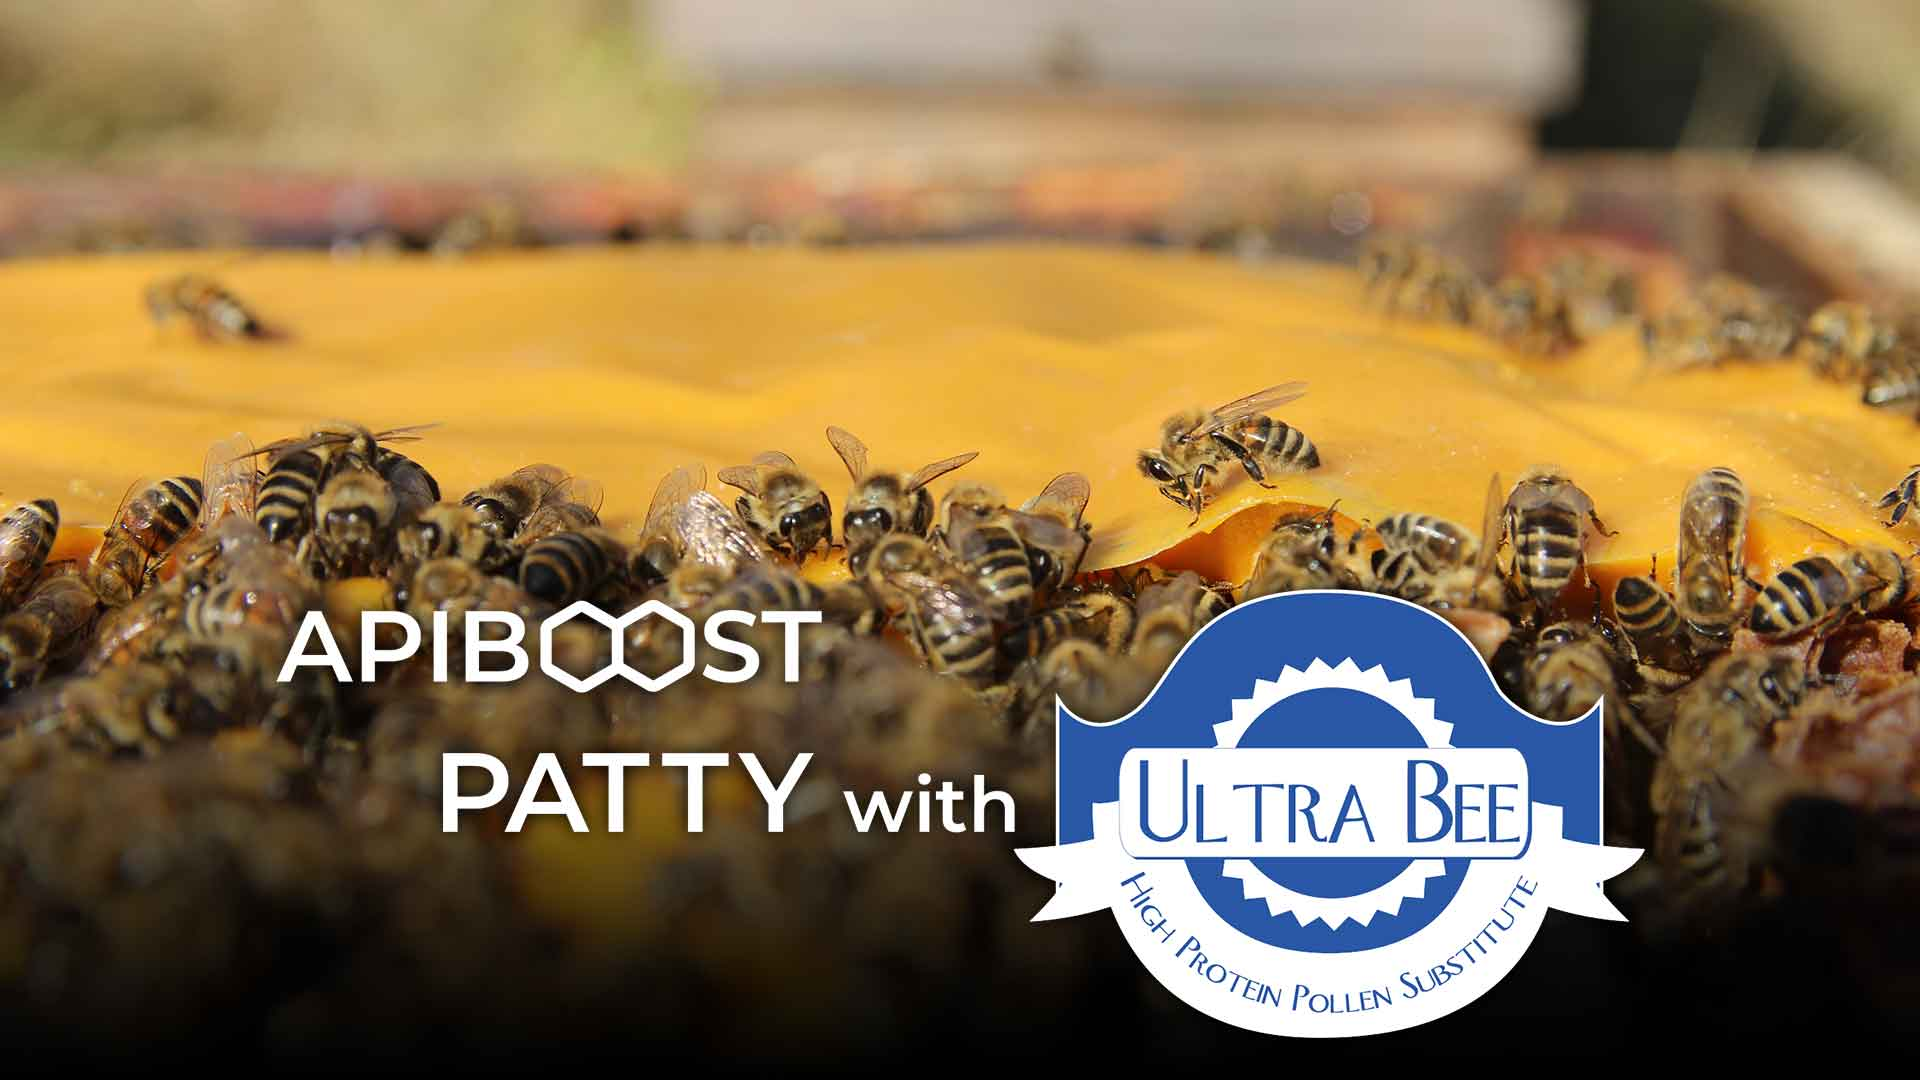 Patty with Ultra Bee - Apiboost